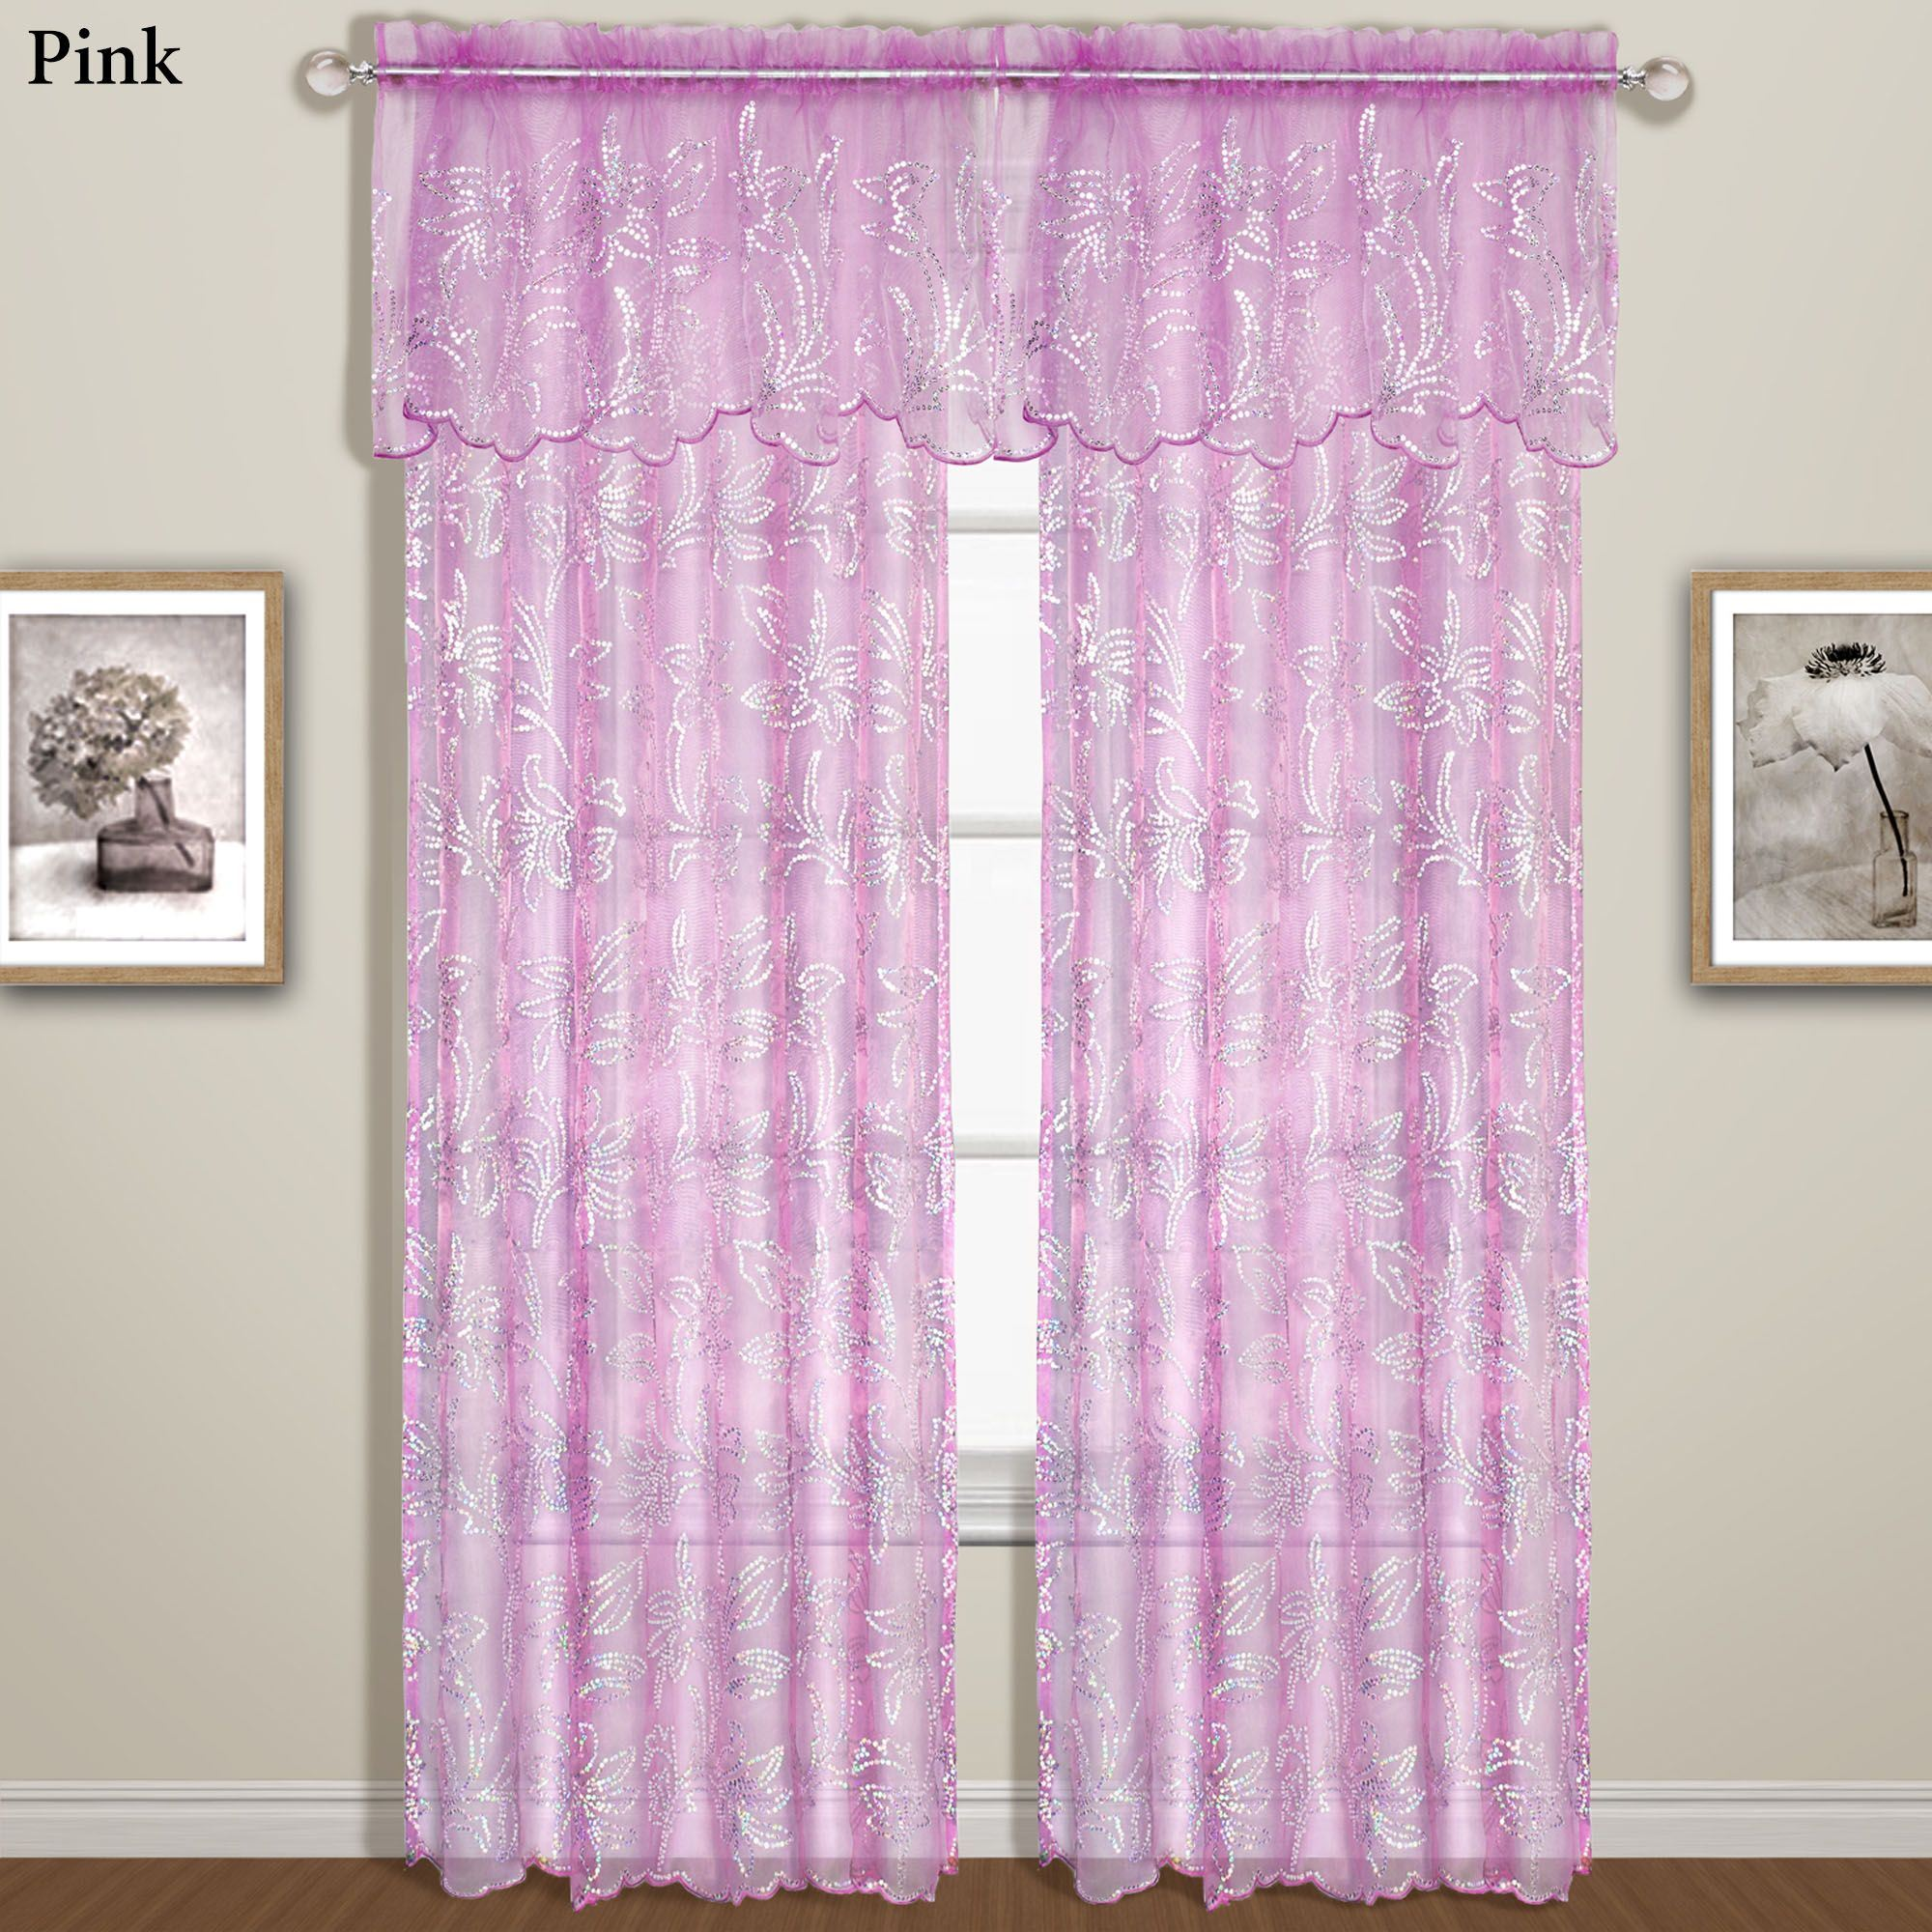 Pink Sequin Curtains Bling Sequined Sheer Window Treatment